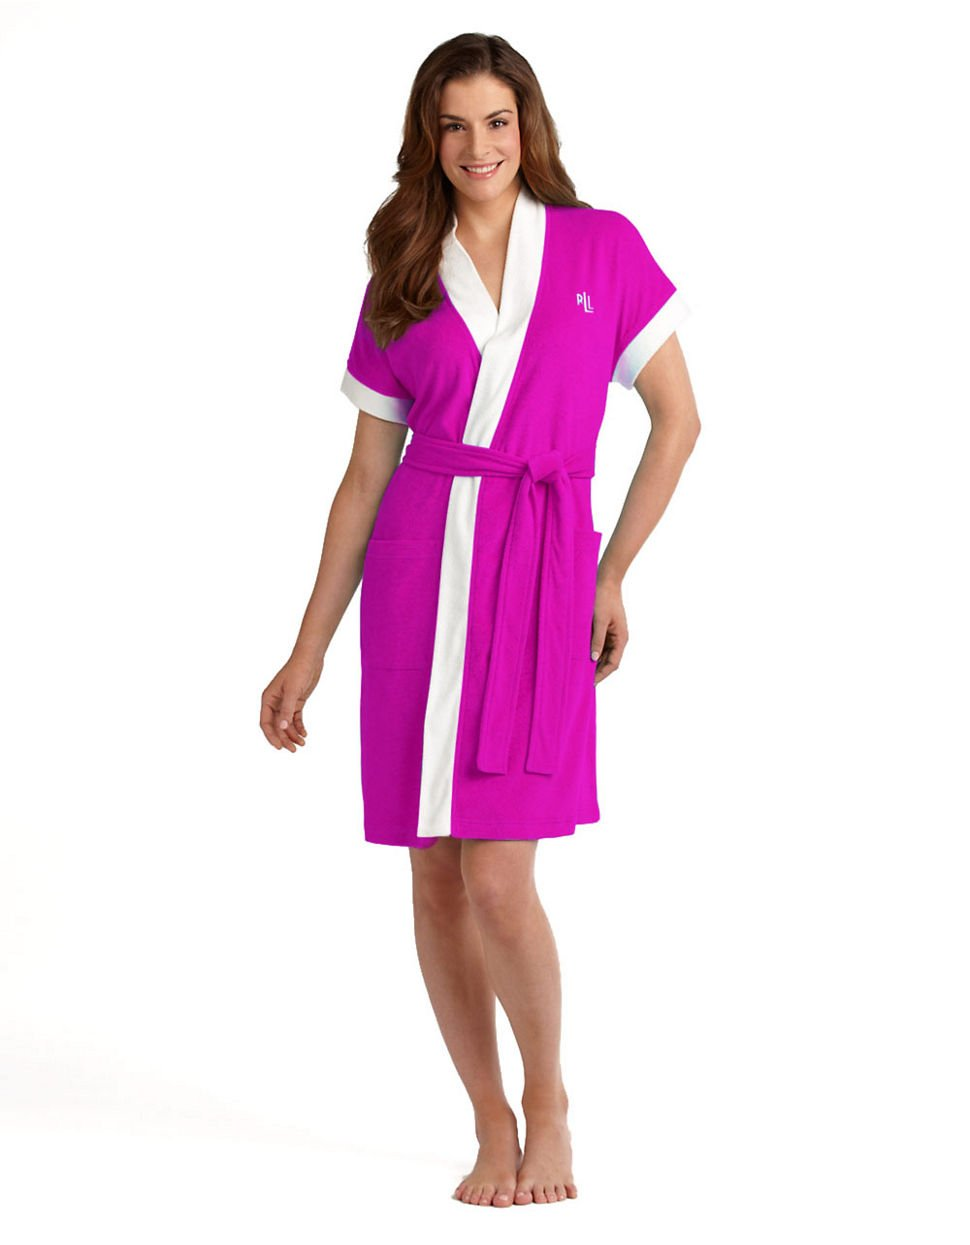 How to use a Venus coupon Weekly deals and season closing sales are available for trendy swimsuits and glamorous fashions. The clearance section offers swimsuits, apparel and accessories up to 75% off for regular savings.